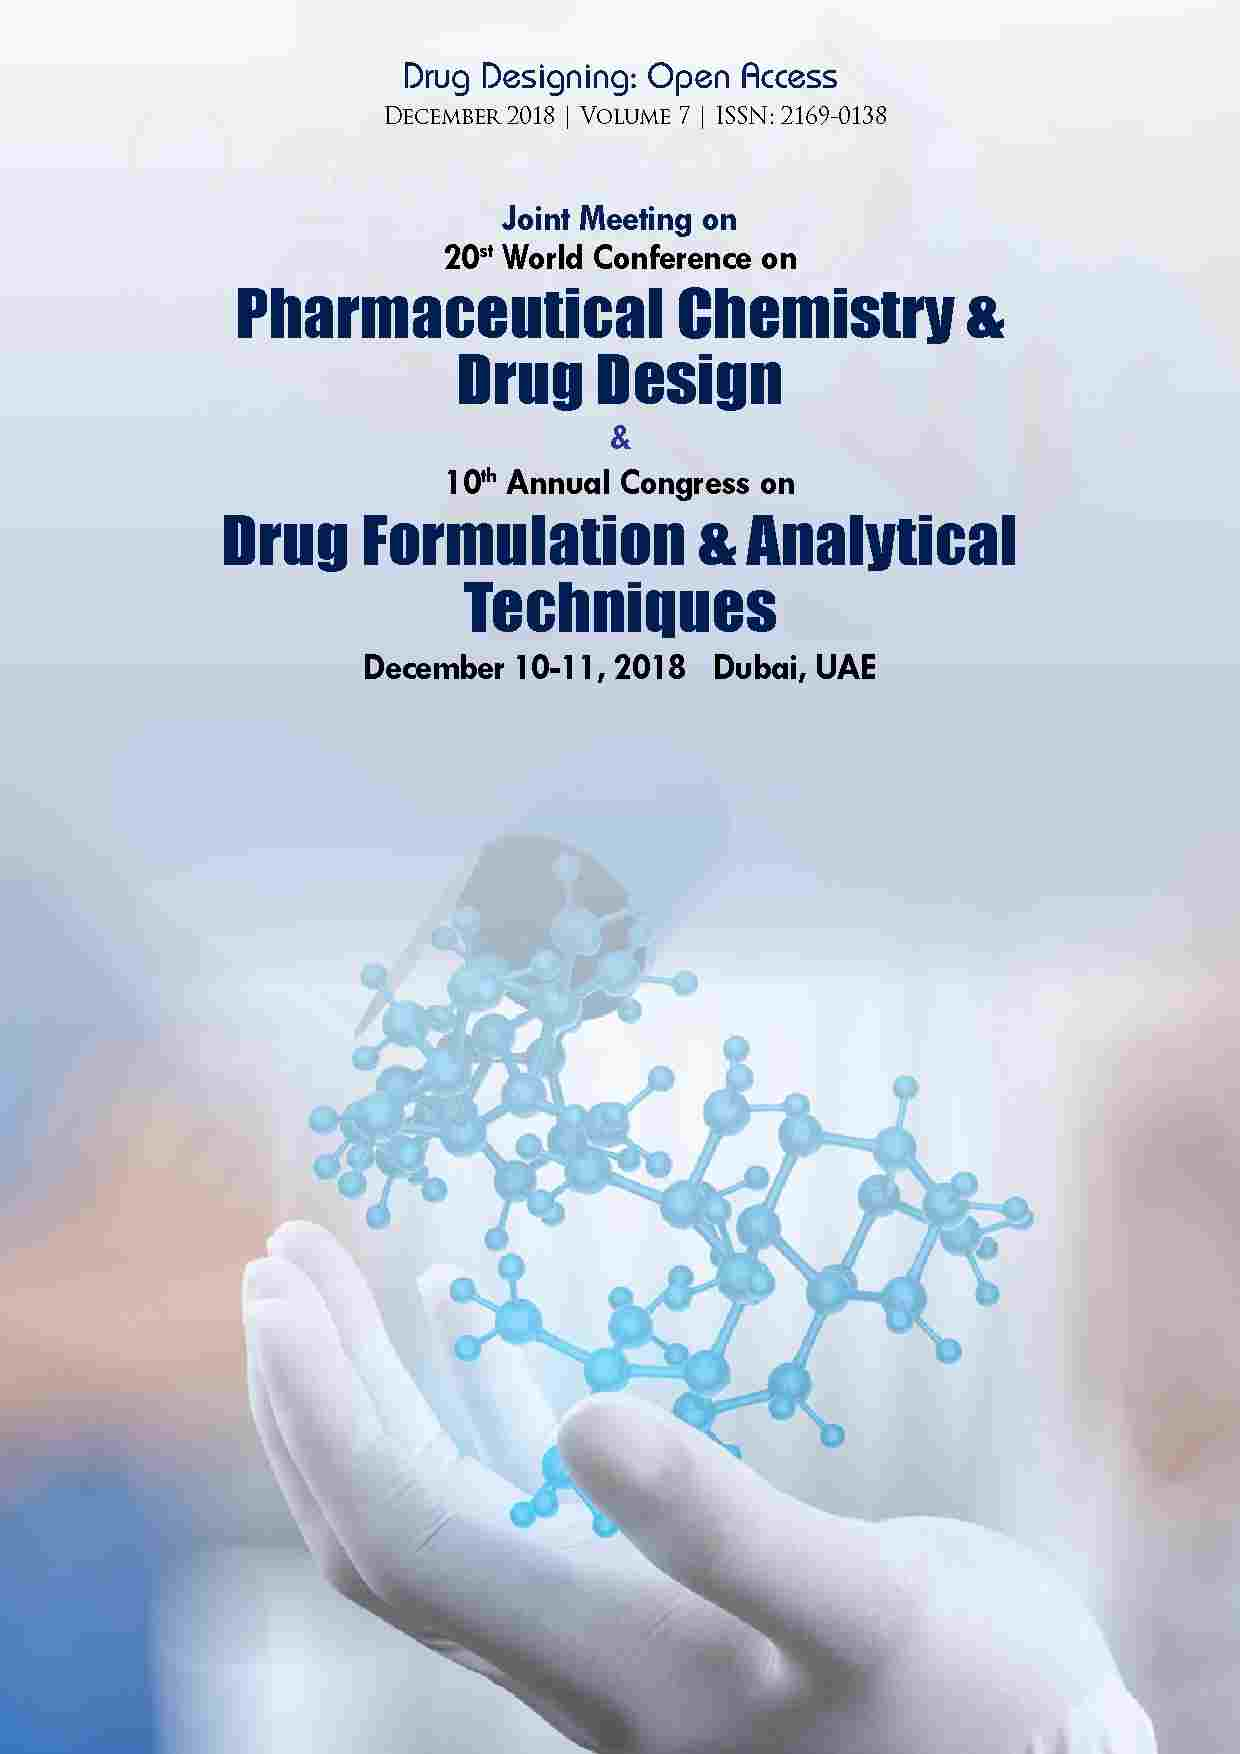 Joint Meeting on 20th World Conference on Pharmaceutical Chemistry and Drug Design & 10th Annual Congress on Drug Formulation & Analytical Techniques  | December 10-11, 2018 | Dubai, UAE